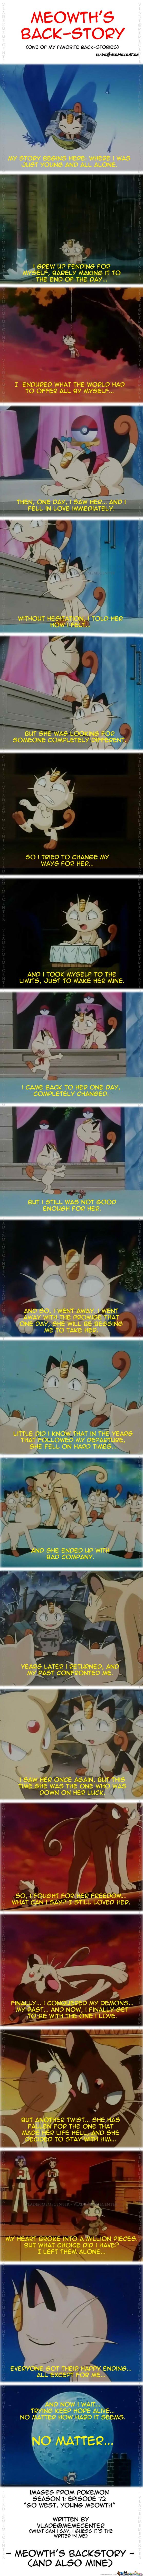 Meowth's Back-Story